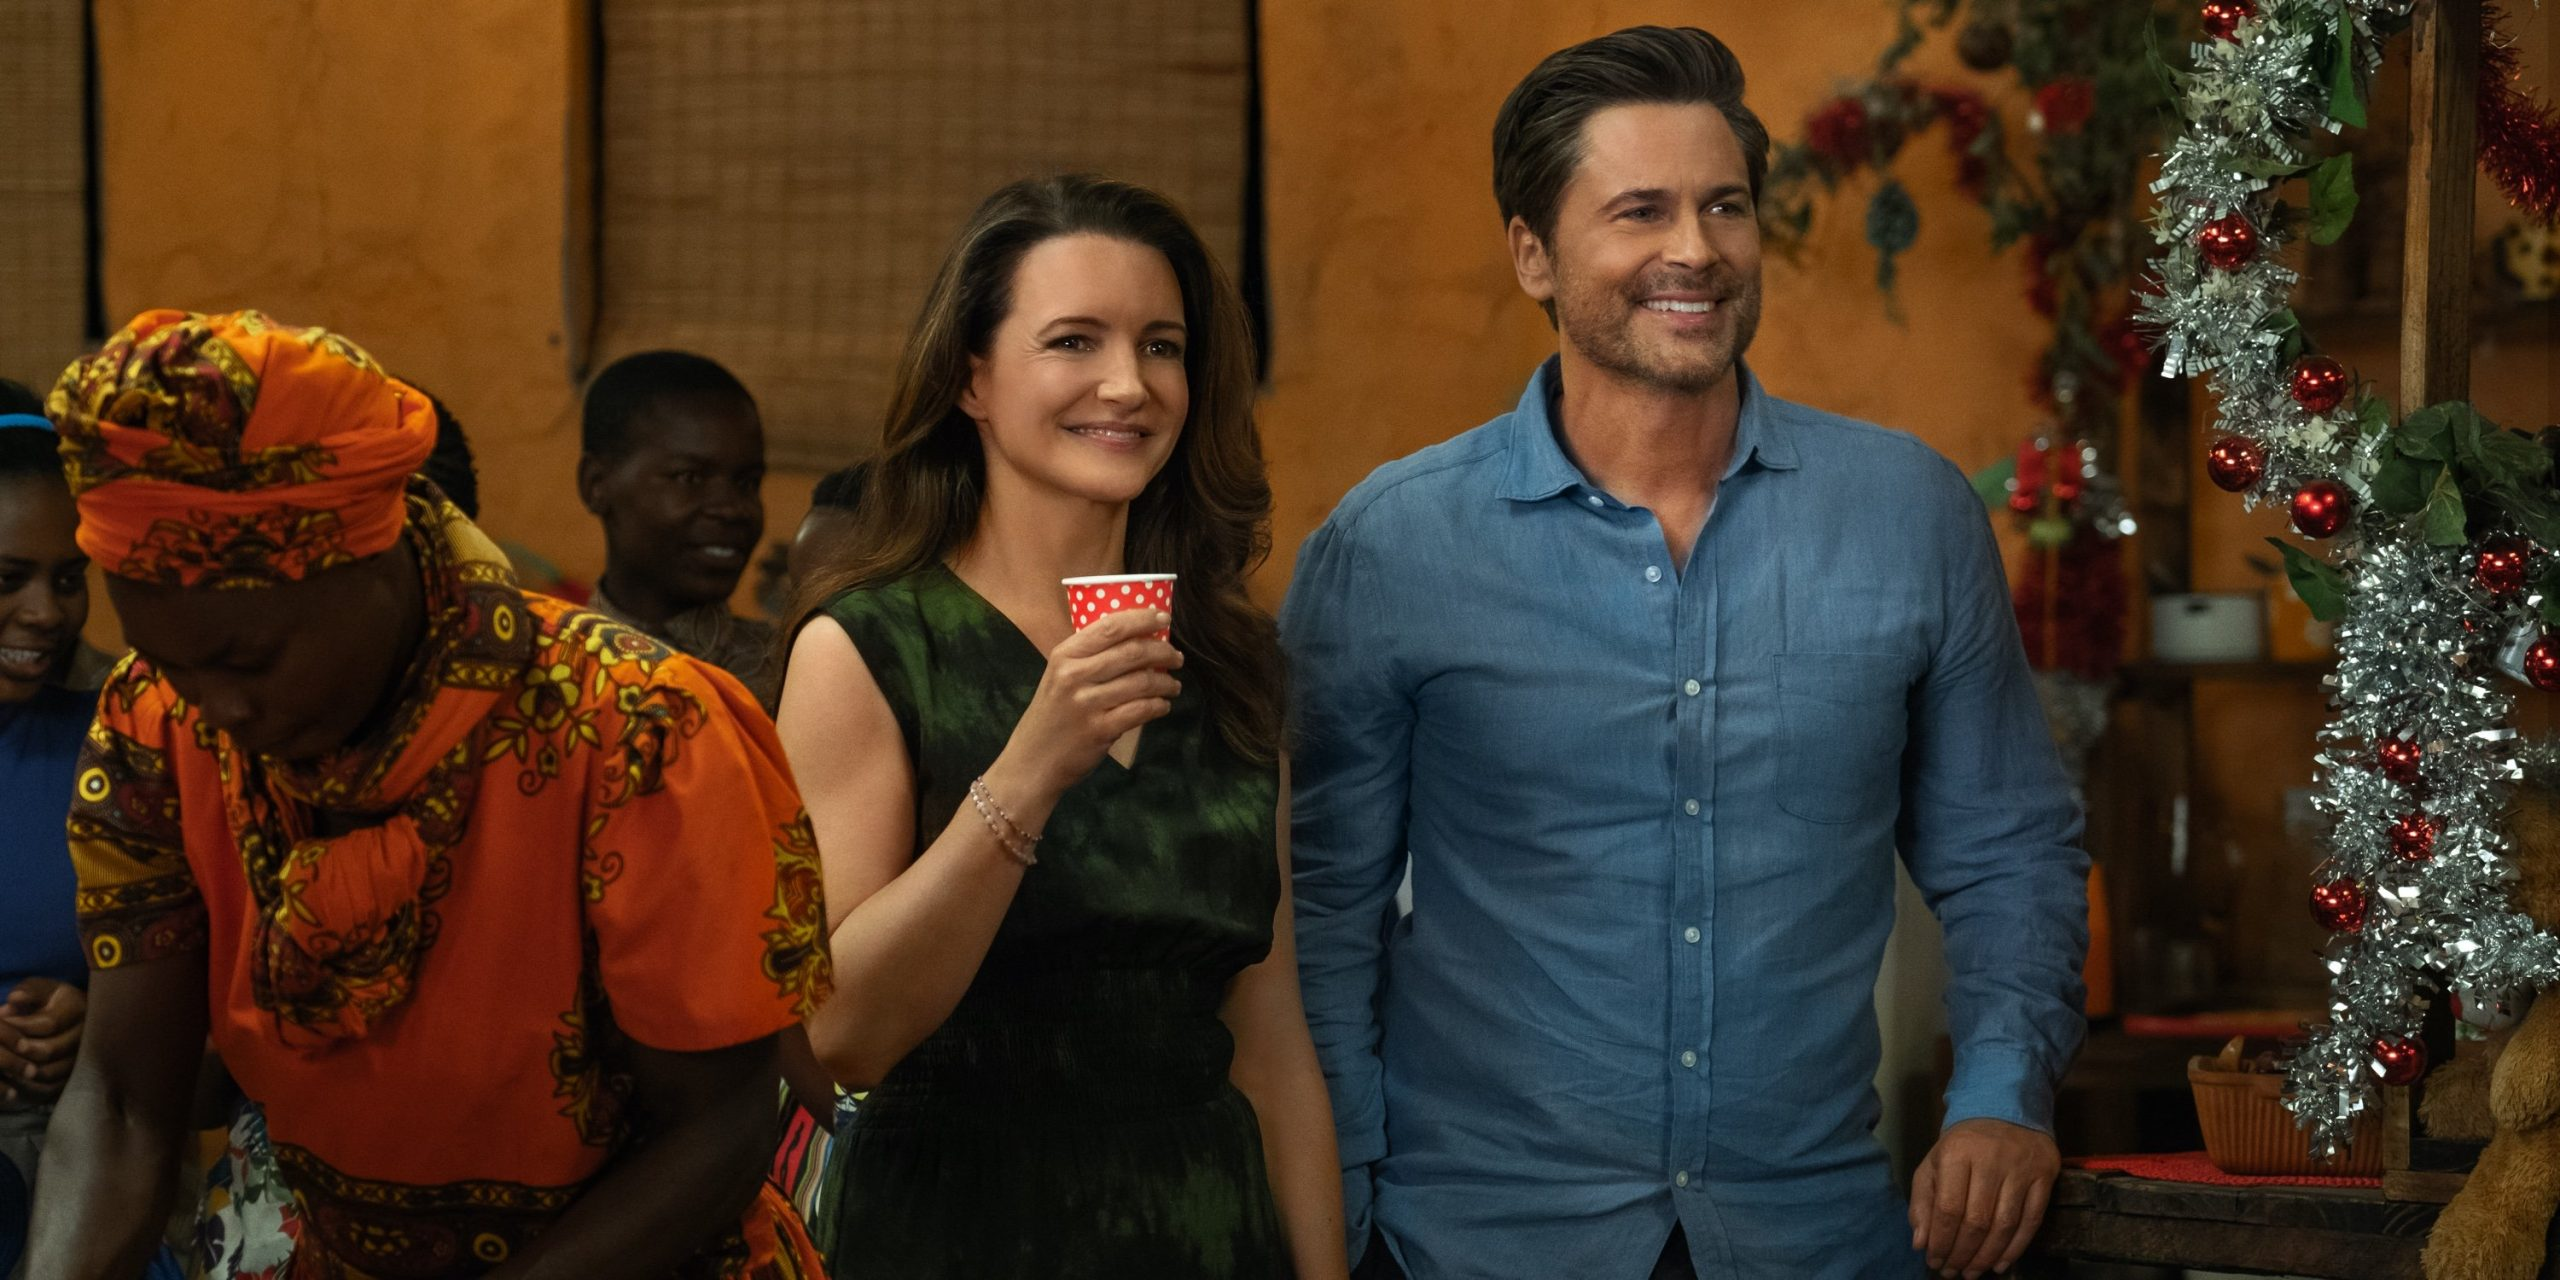 Holiday in the Wild Review: Netflix's version of Hallmark Channel